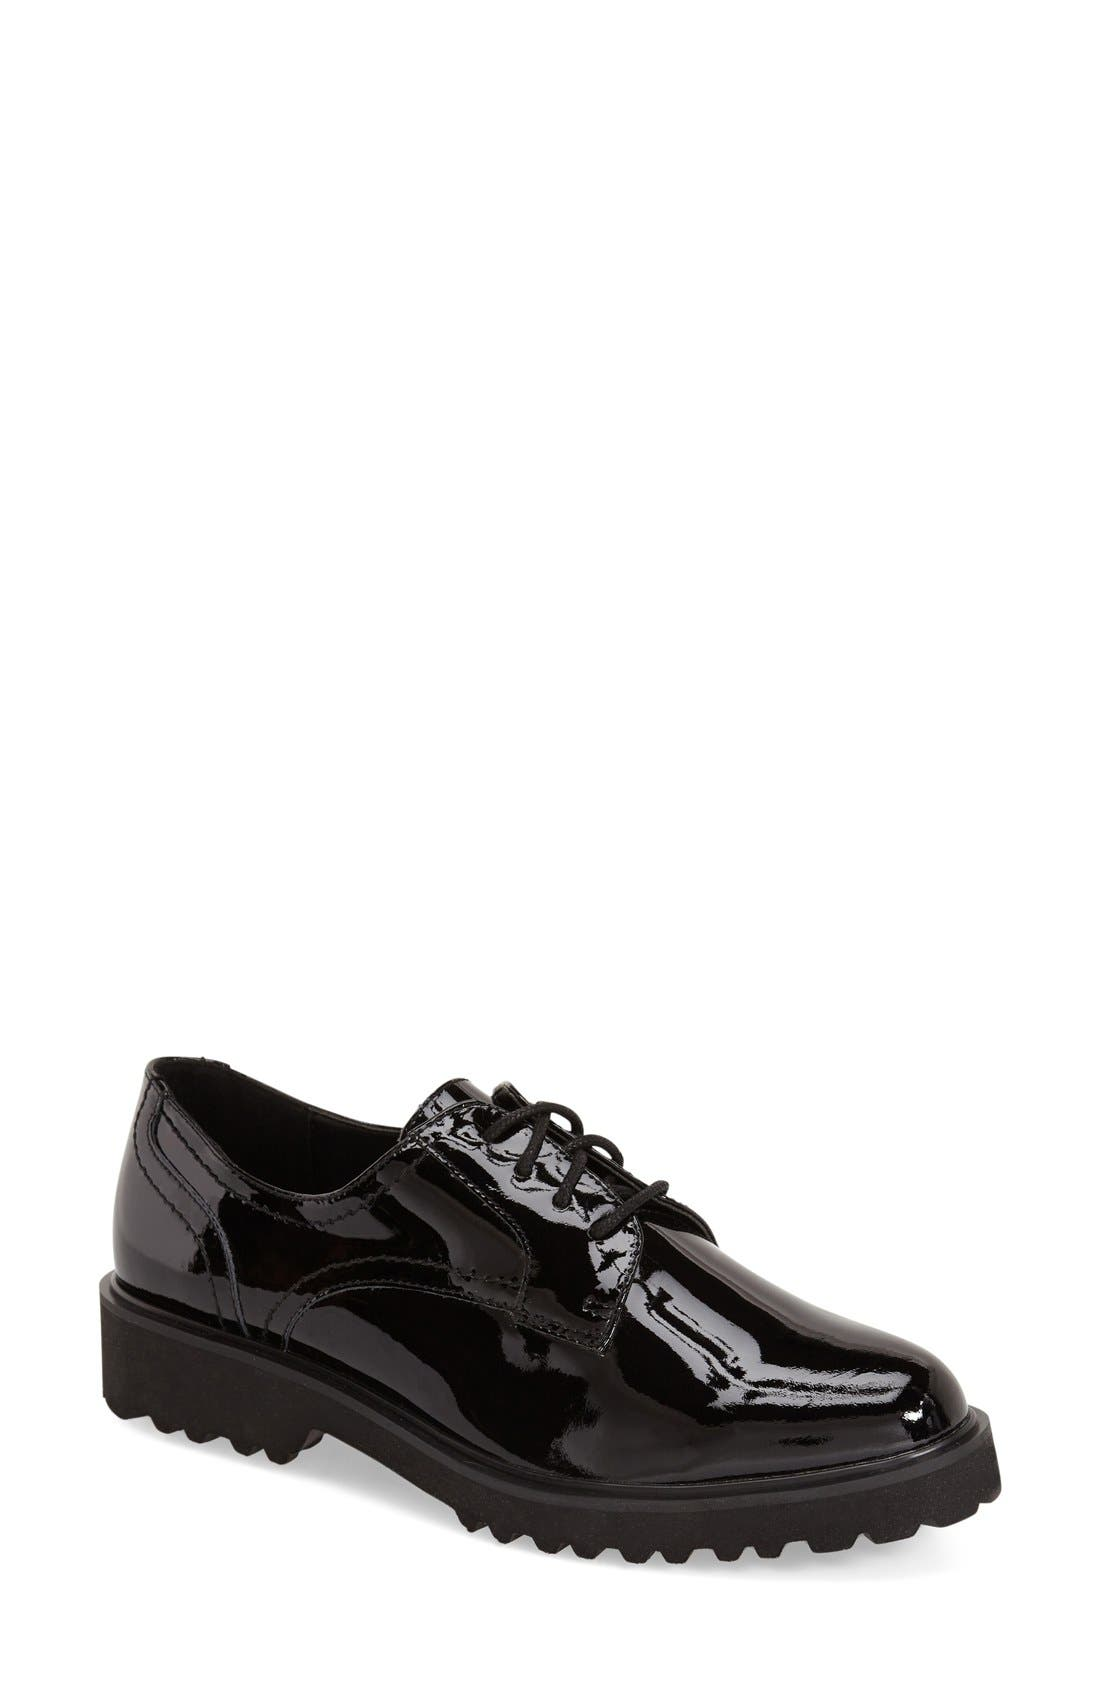 Main Image - Dune London 'Filipo' Lug Sole Water Resistant Oxford (Women)